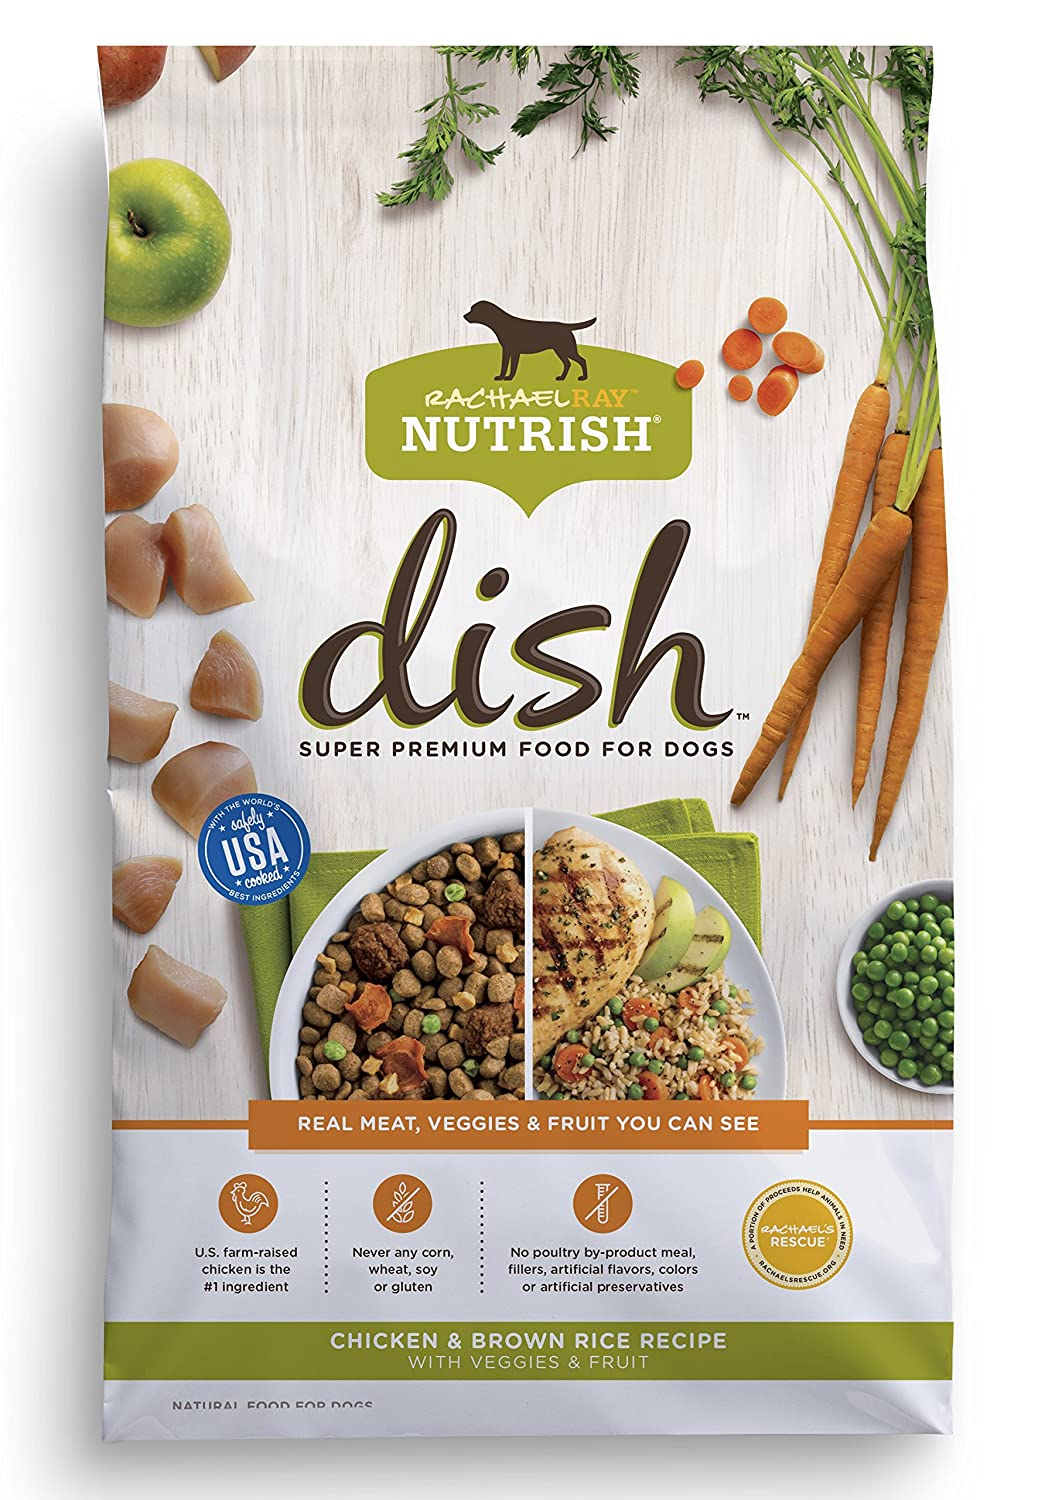 graphic about Rachael Ray Cat Food Printable Coupons known as Rachael Ray Nutrish Dish Tremendous High quality Dry Doggy Foodstuff